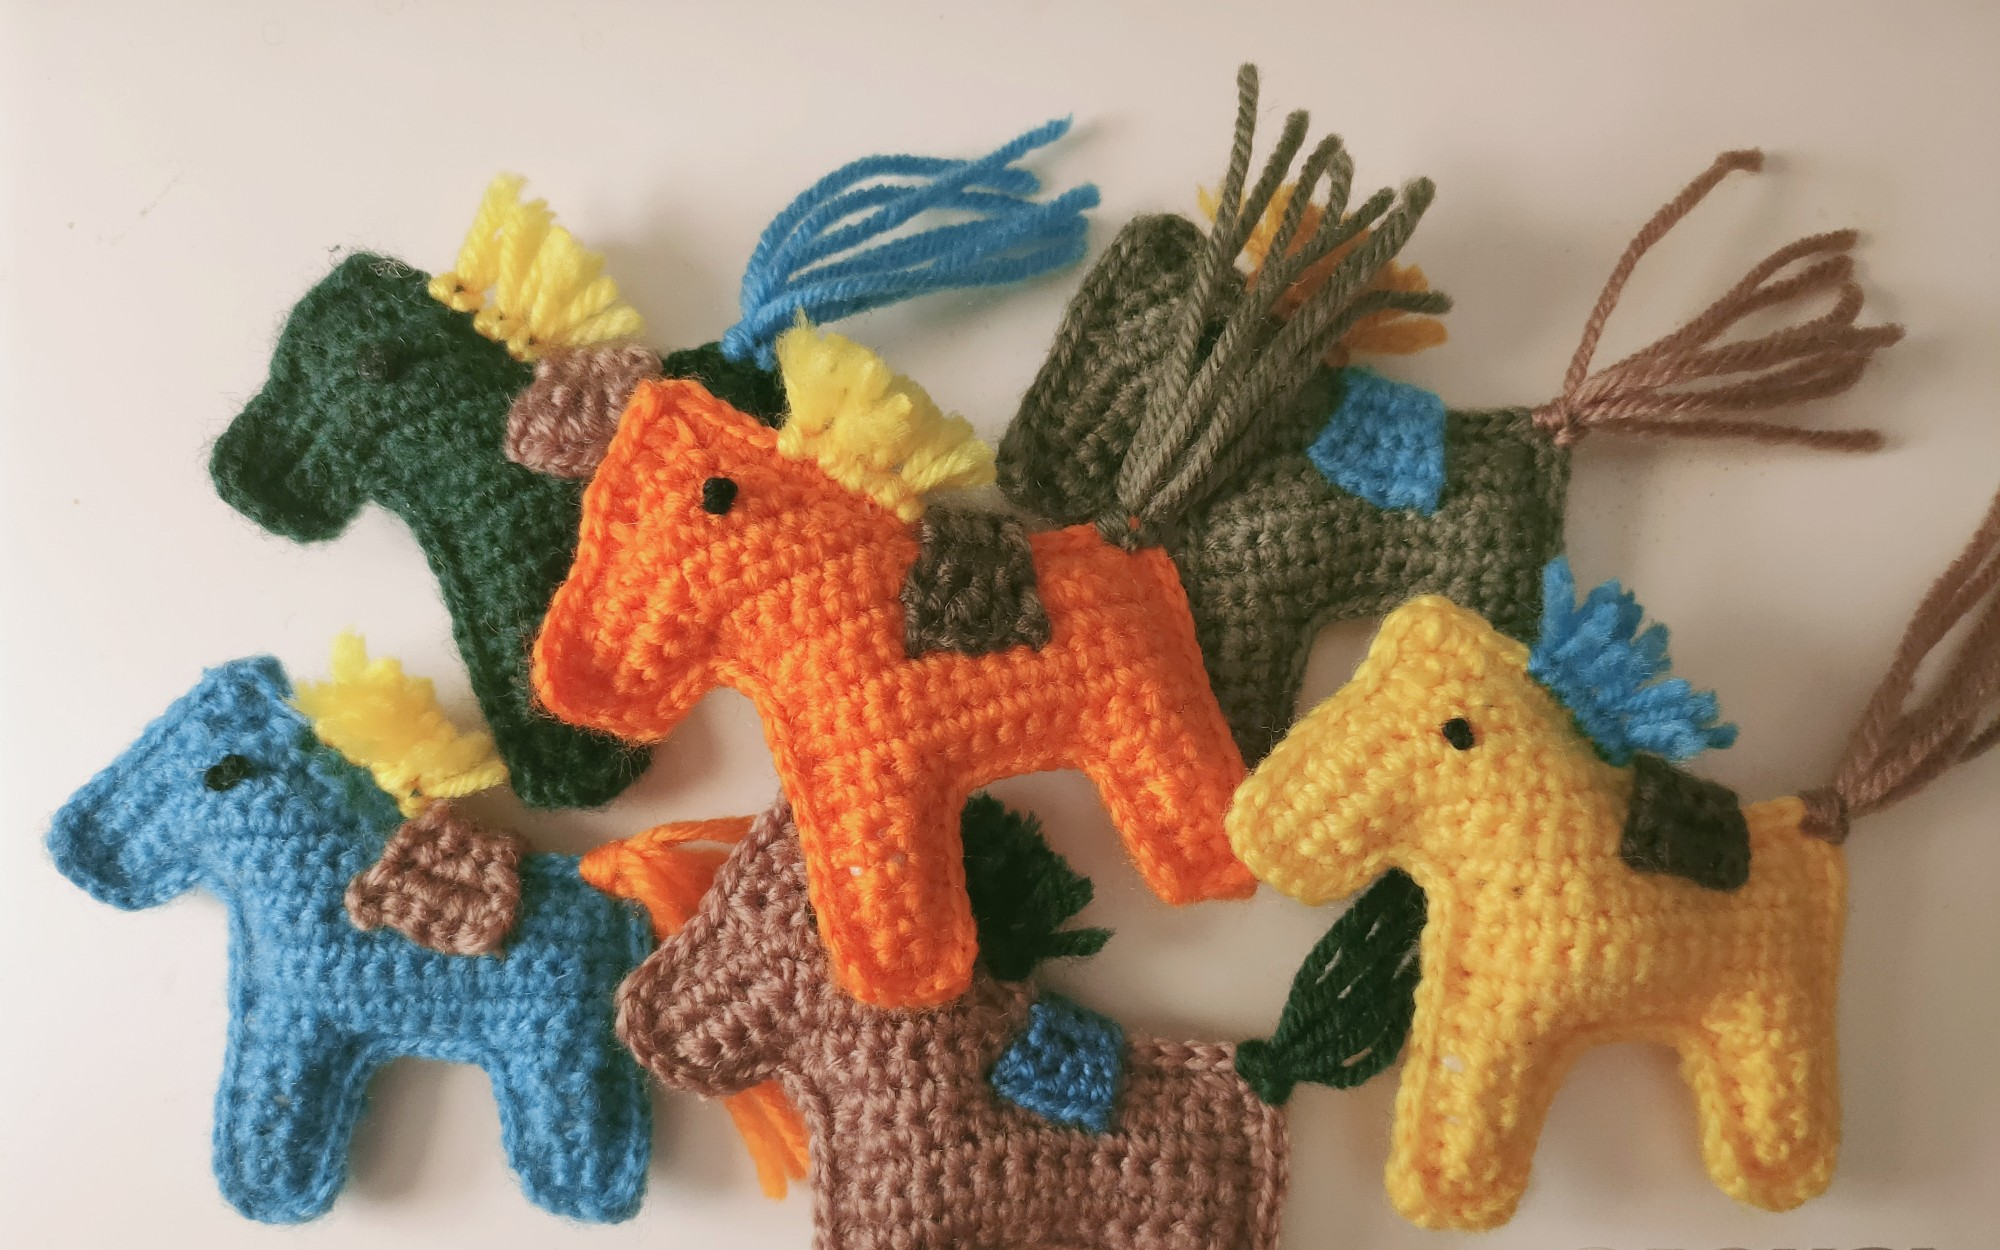 Cuddle Me Pony amigurumi pattern - Amigurumi Today | 1250x2000